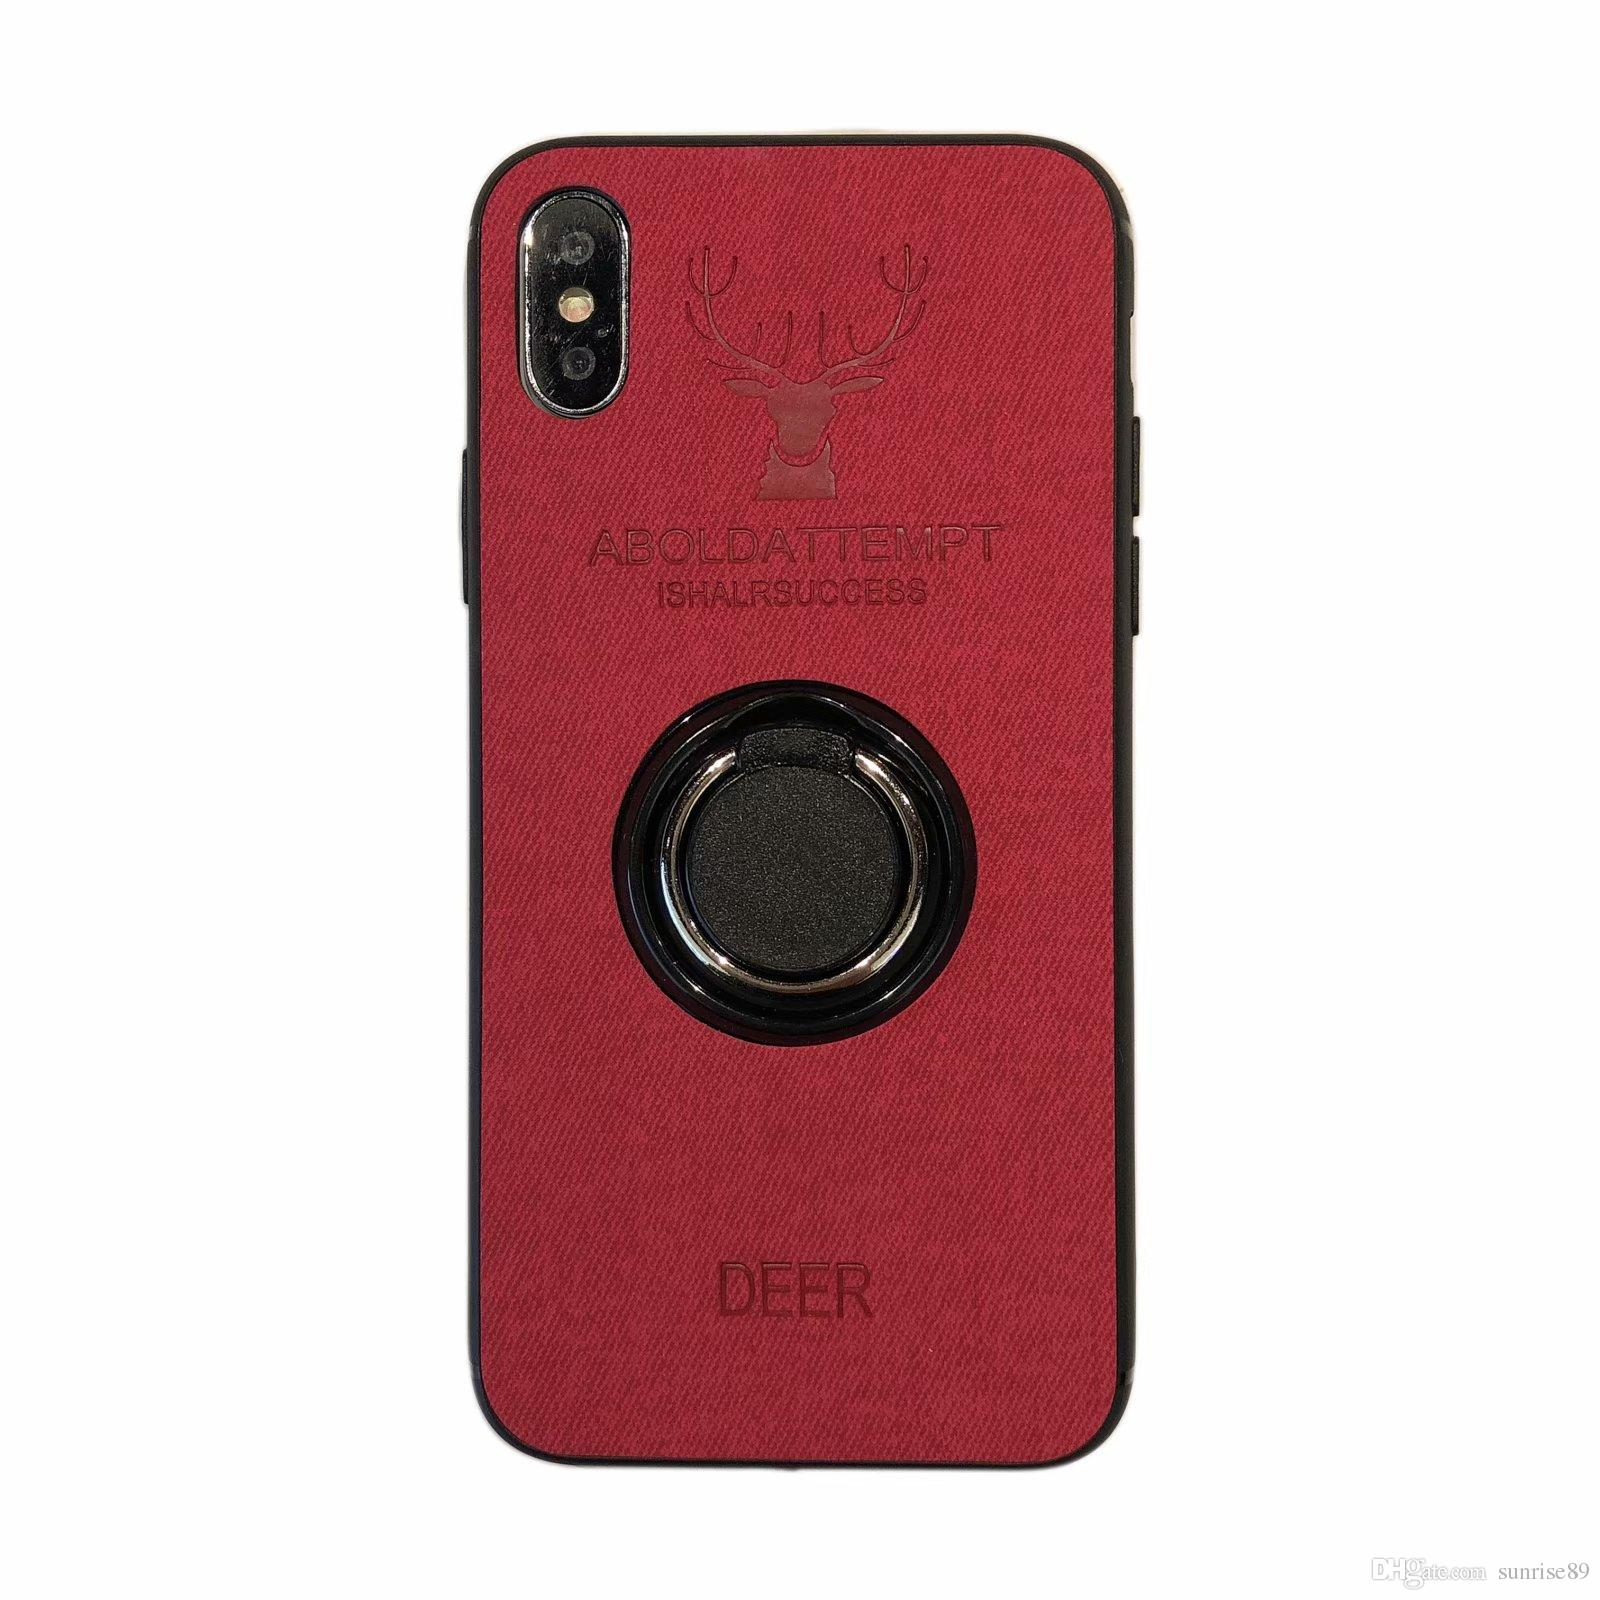 Deer Original Phone Case For iPhone XS MAX XR X 7 8 Plus Back Shockproof Soft Cases ring holder New hot sell Case